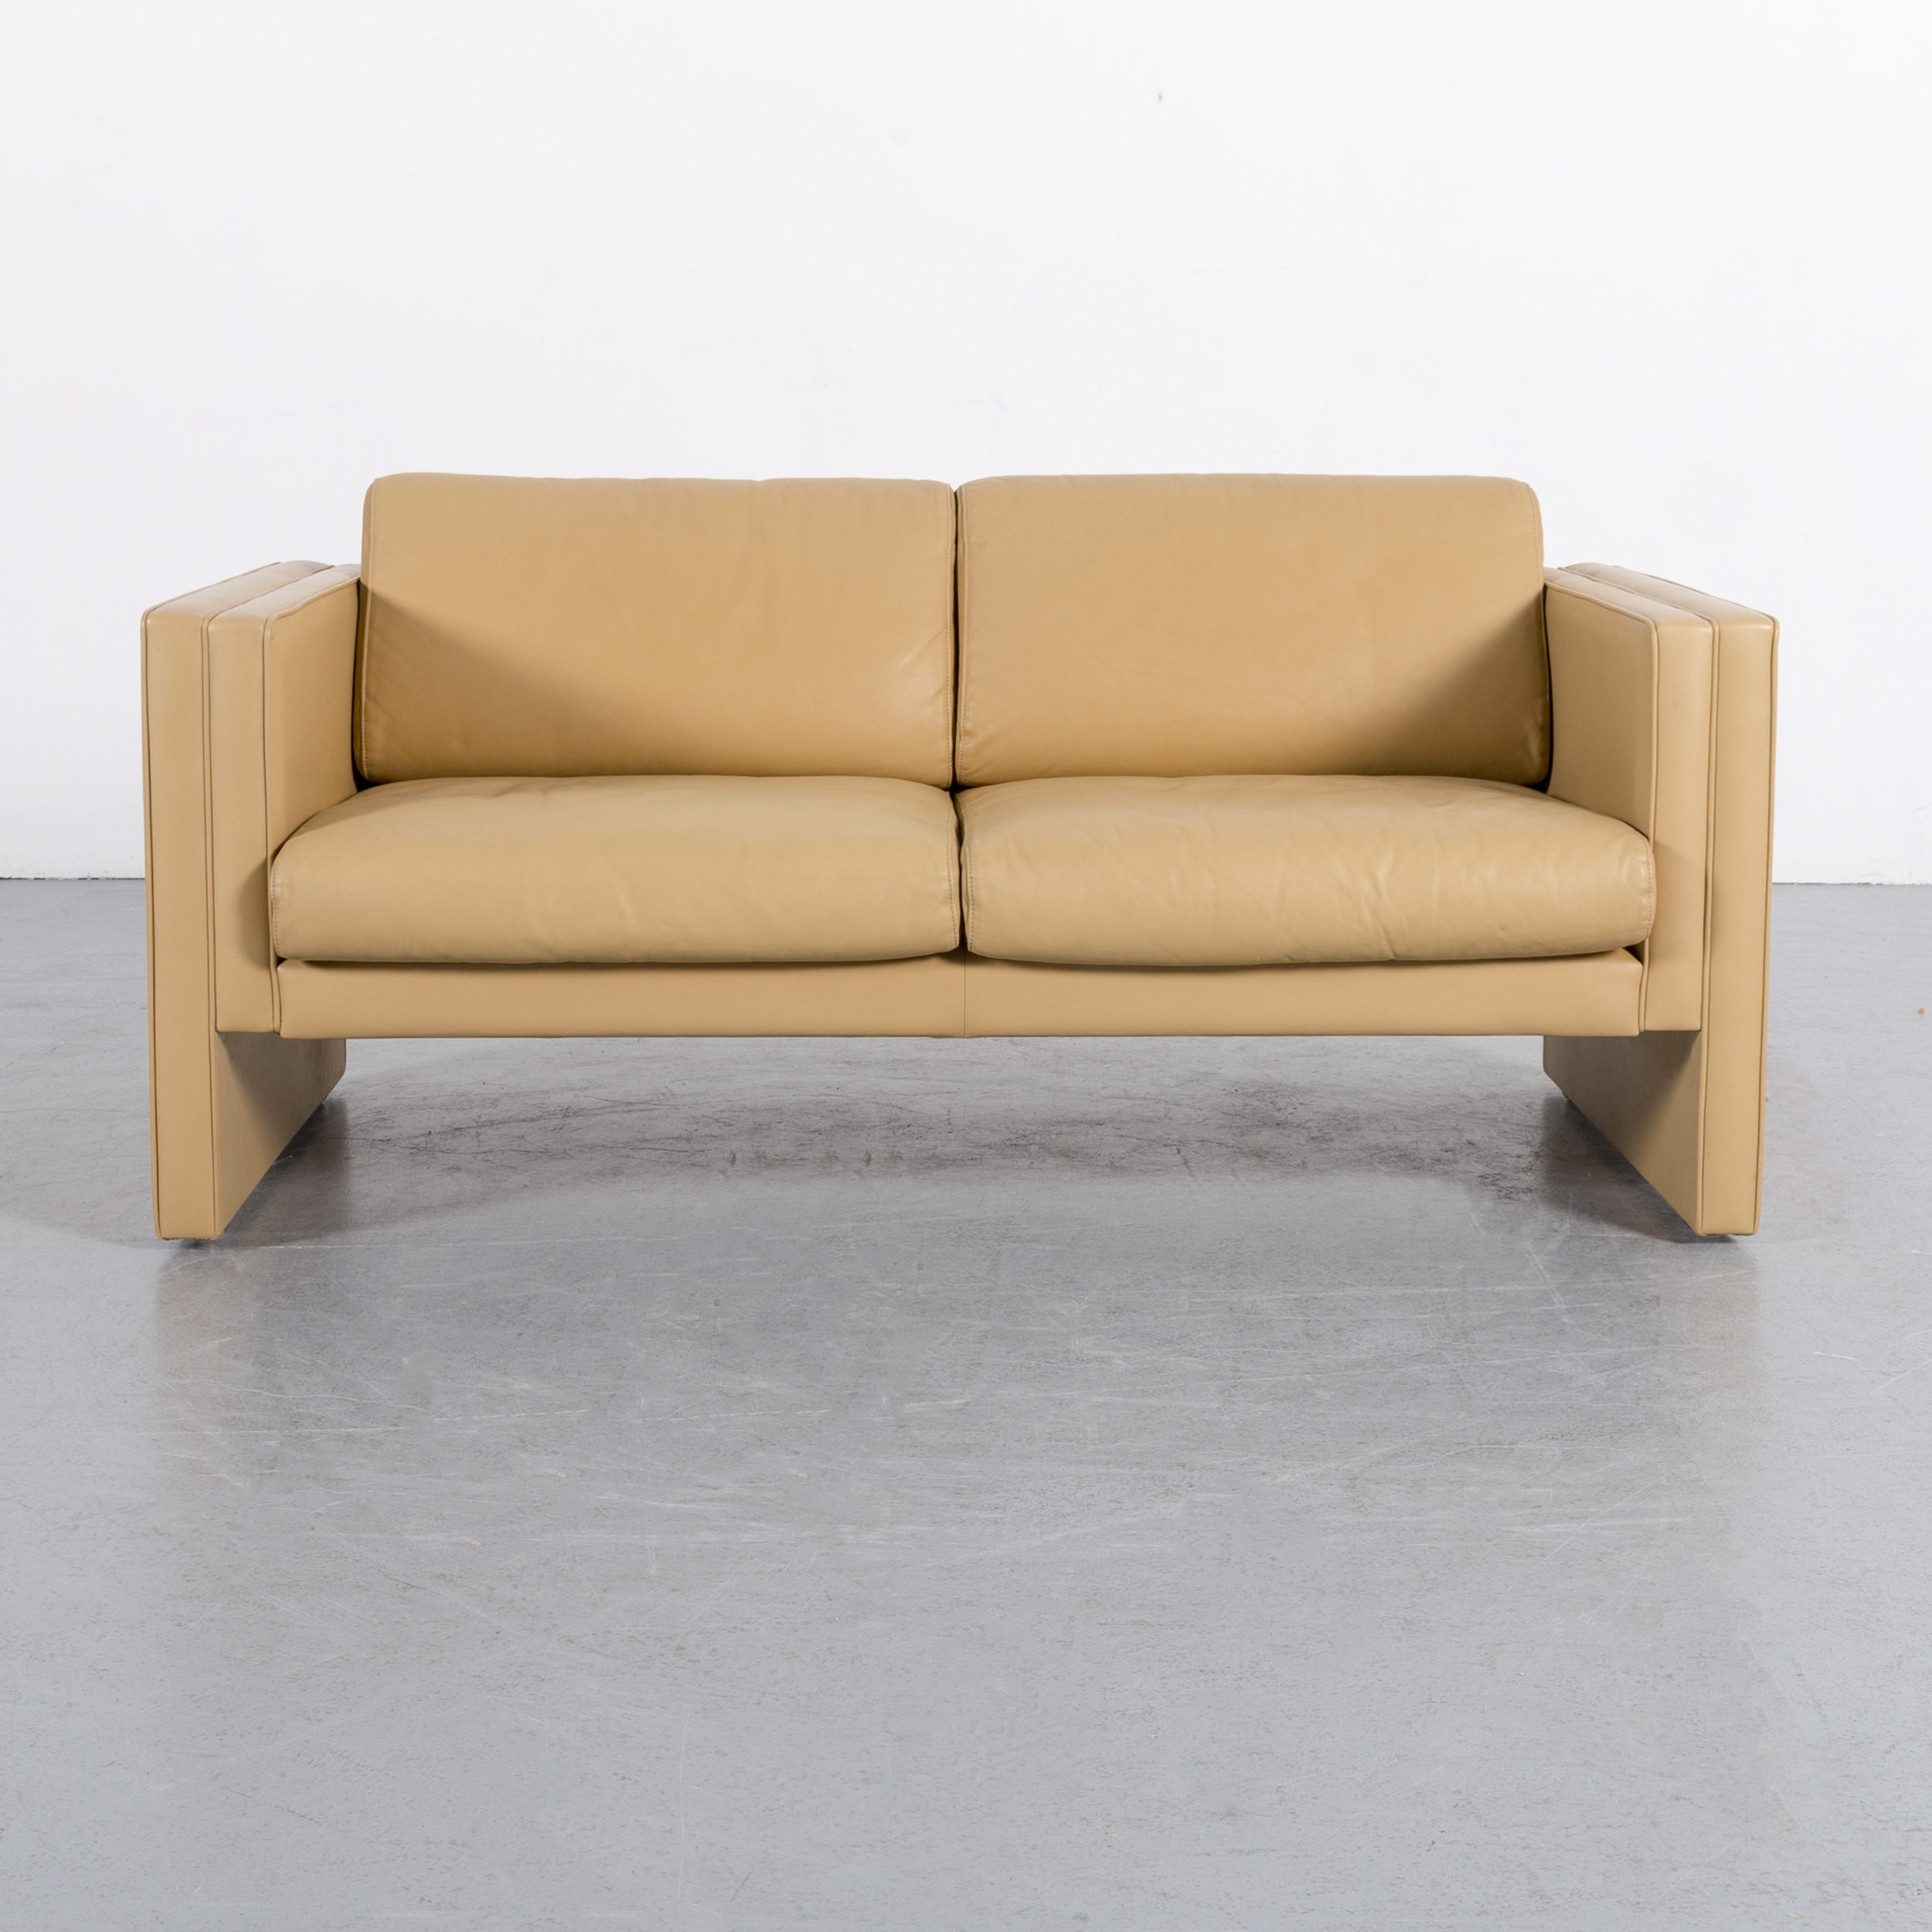 Walter Knoll Leather Sofa Yellow Beige Two Seater Couch Genuine Within Walter Leather Sofa Chairs (Image 18 of 25)